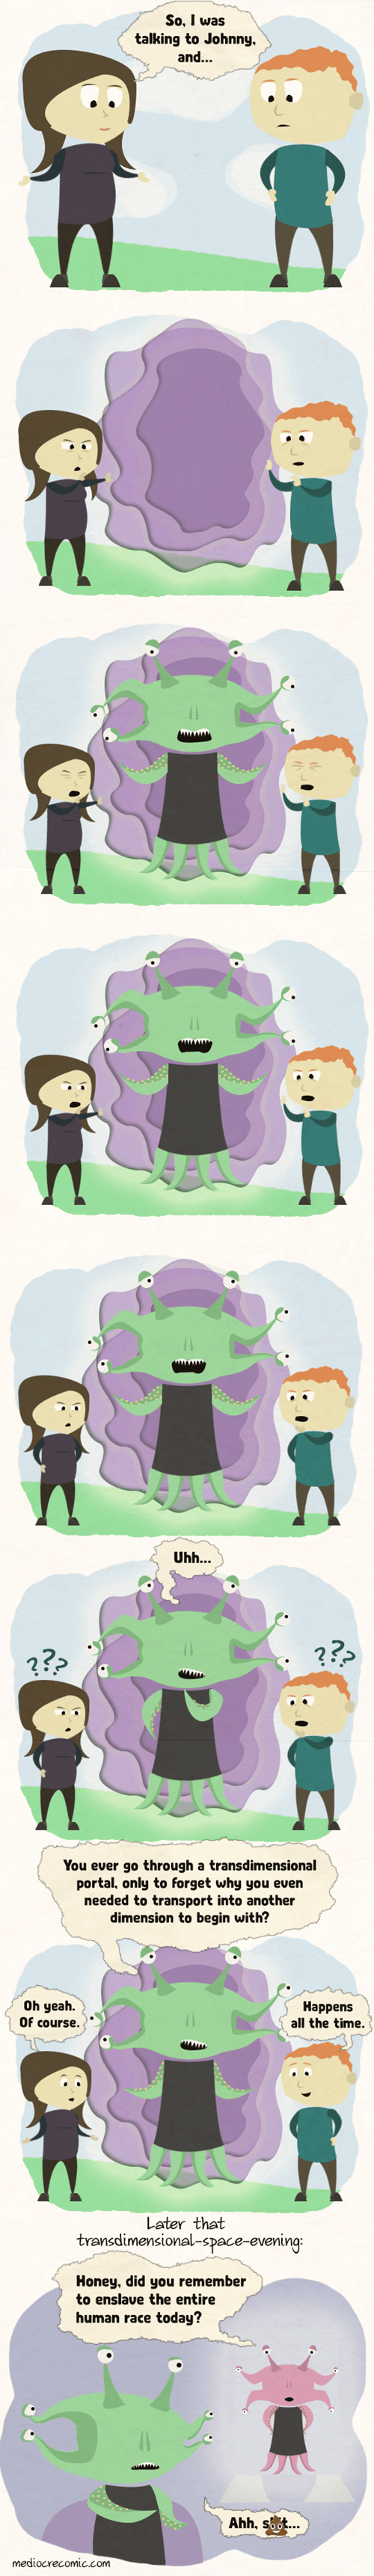 Aliens,sad but true,web comics